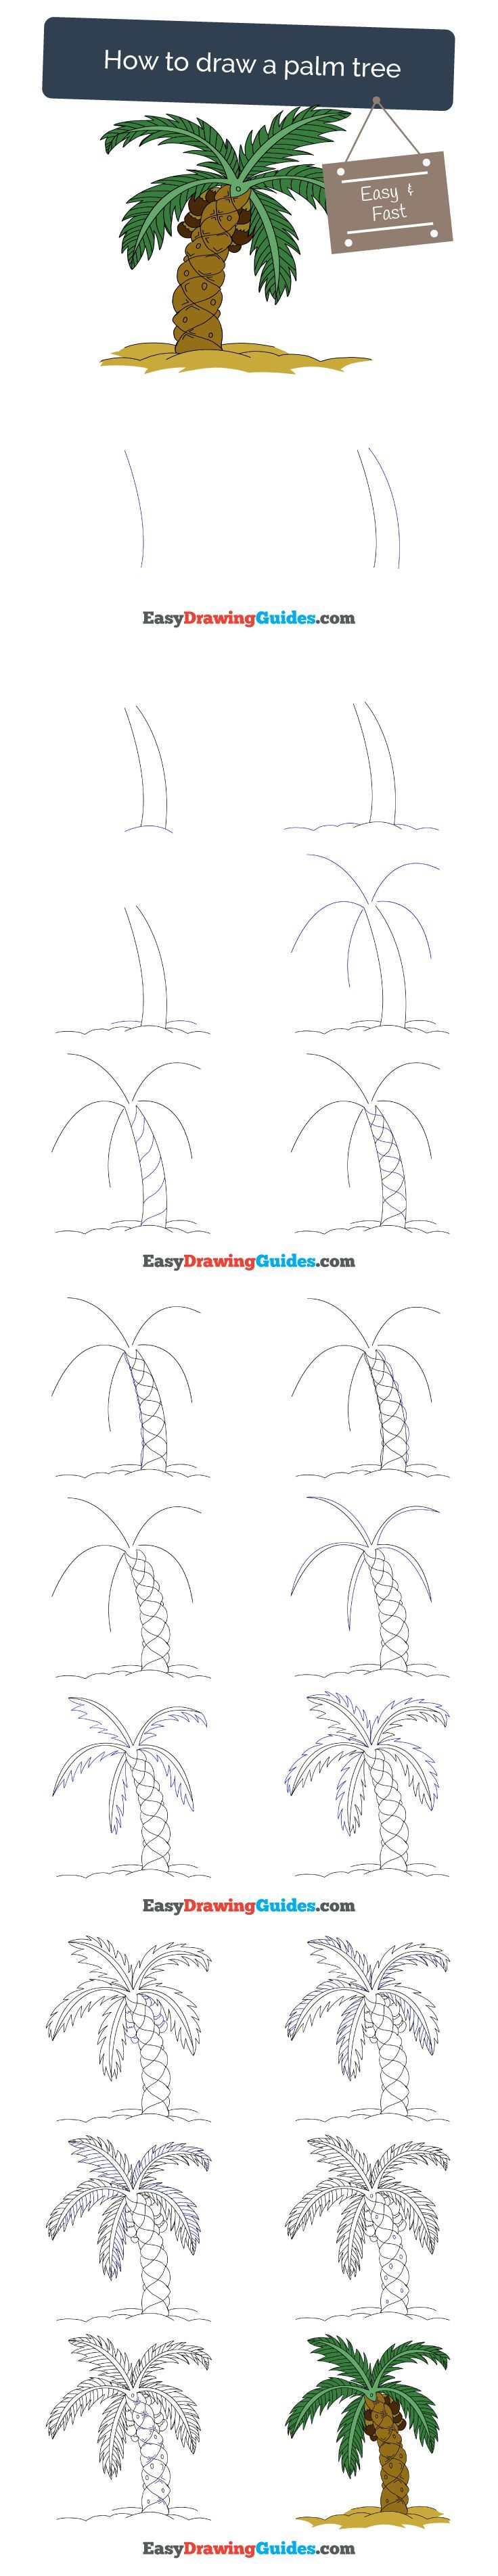 20 How to draw trees instructions for kids - Step by step ...